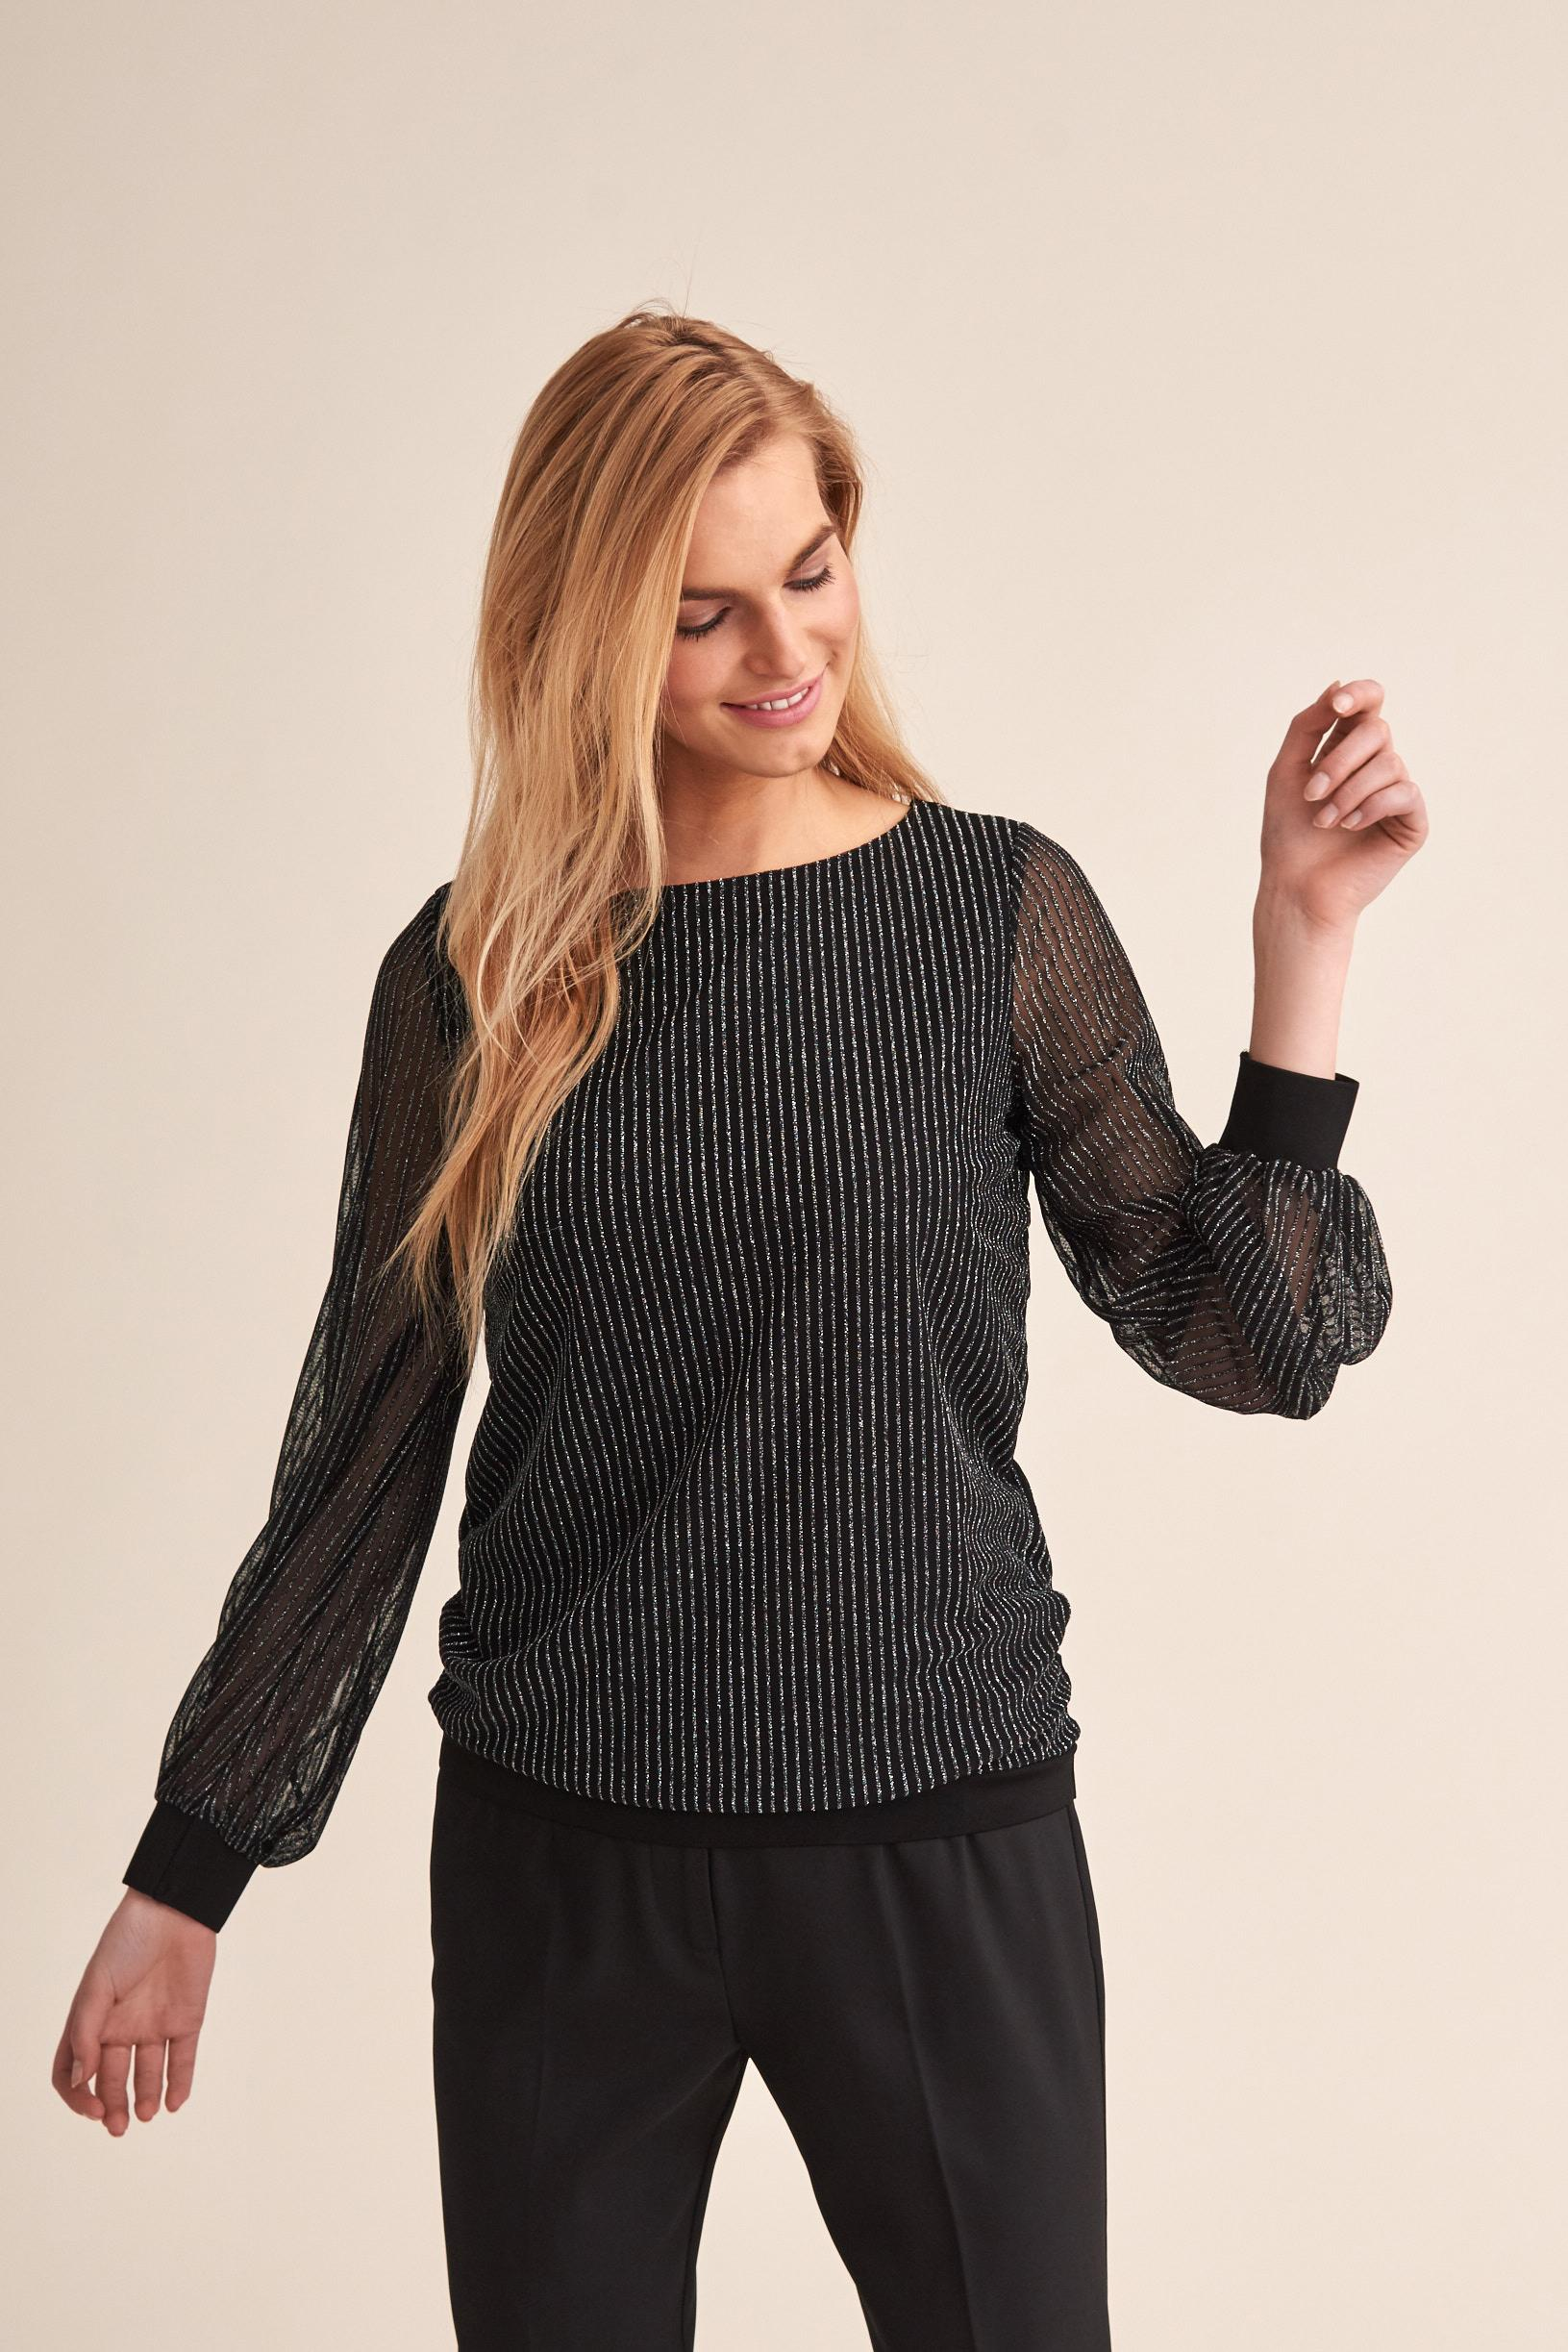 KNITTED BLOUSE WITH A SHINY THREAD MANAMI